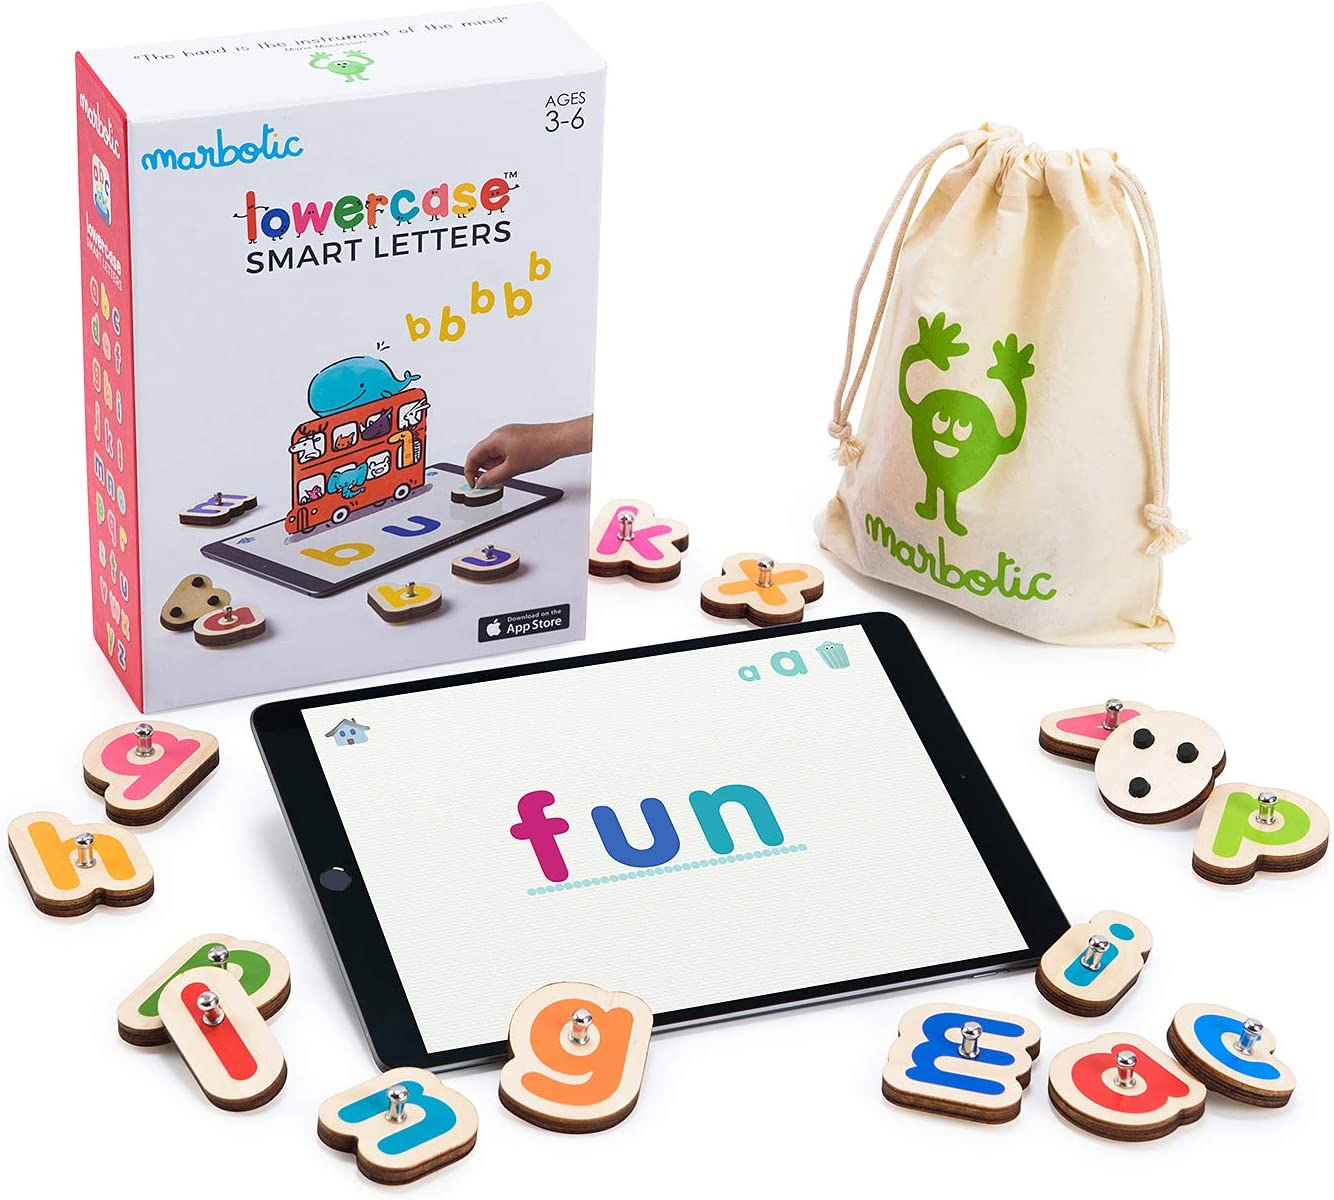 Marbotic - Lowercase Smart Letters for iPad - Ages 3-5 - Interactive Wooden Letters - Hands-on Educational Learning Games for Preschoolers - Homeschooling Tool for Early Reading & Writing